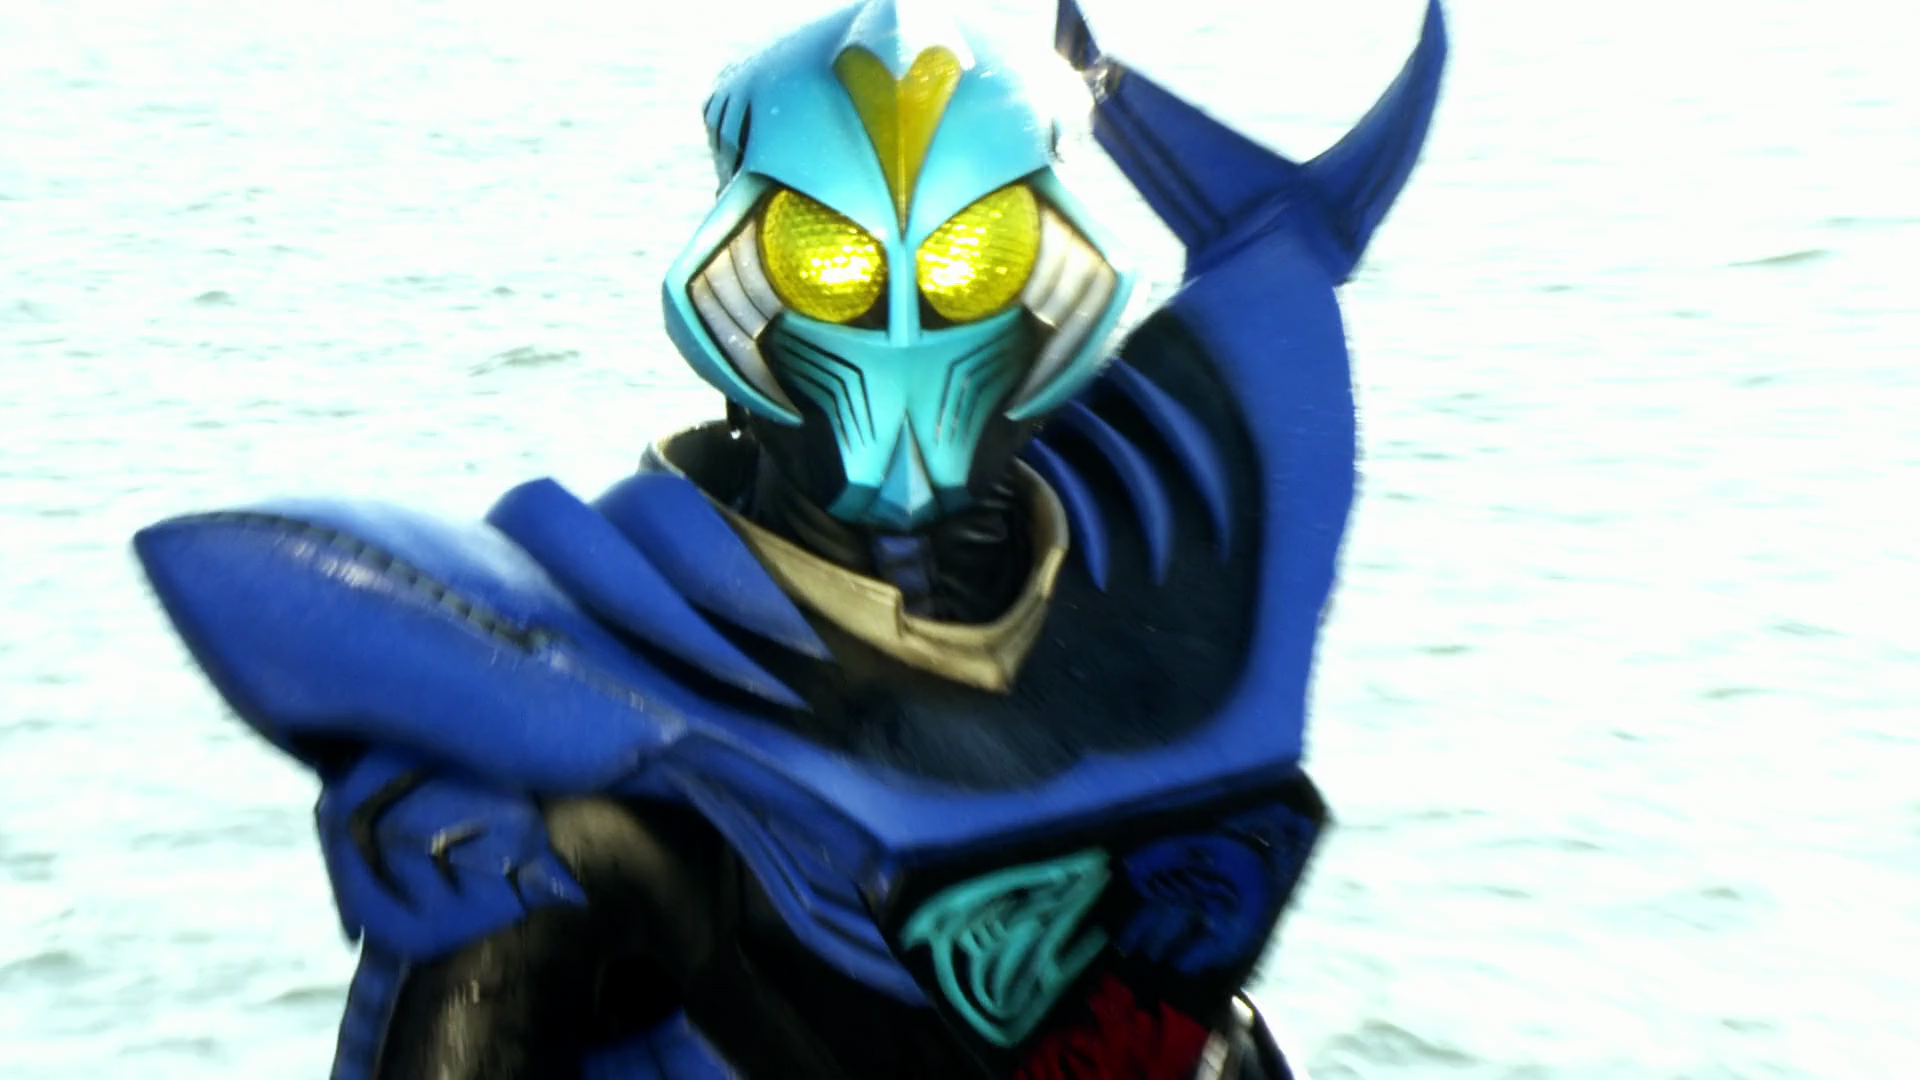 Poseidon | Kamen Rider Wiki | FANDOM powered by Wikia